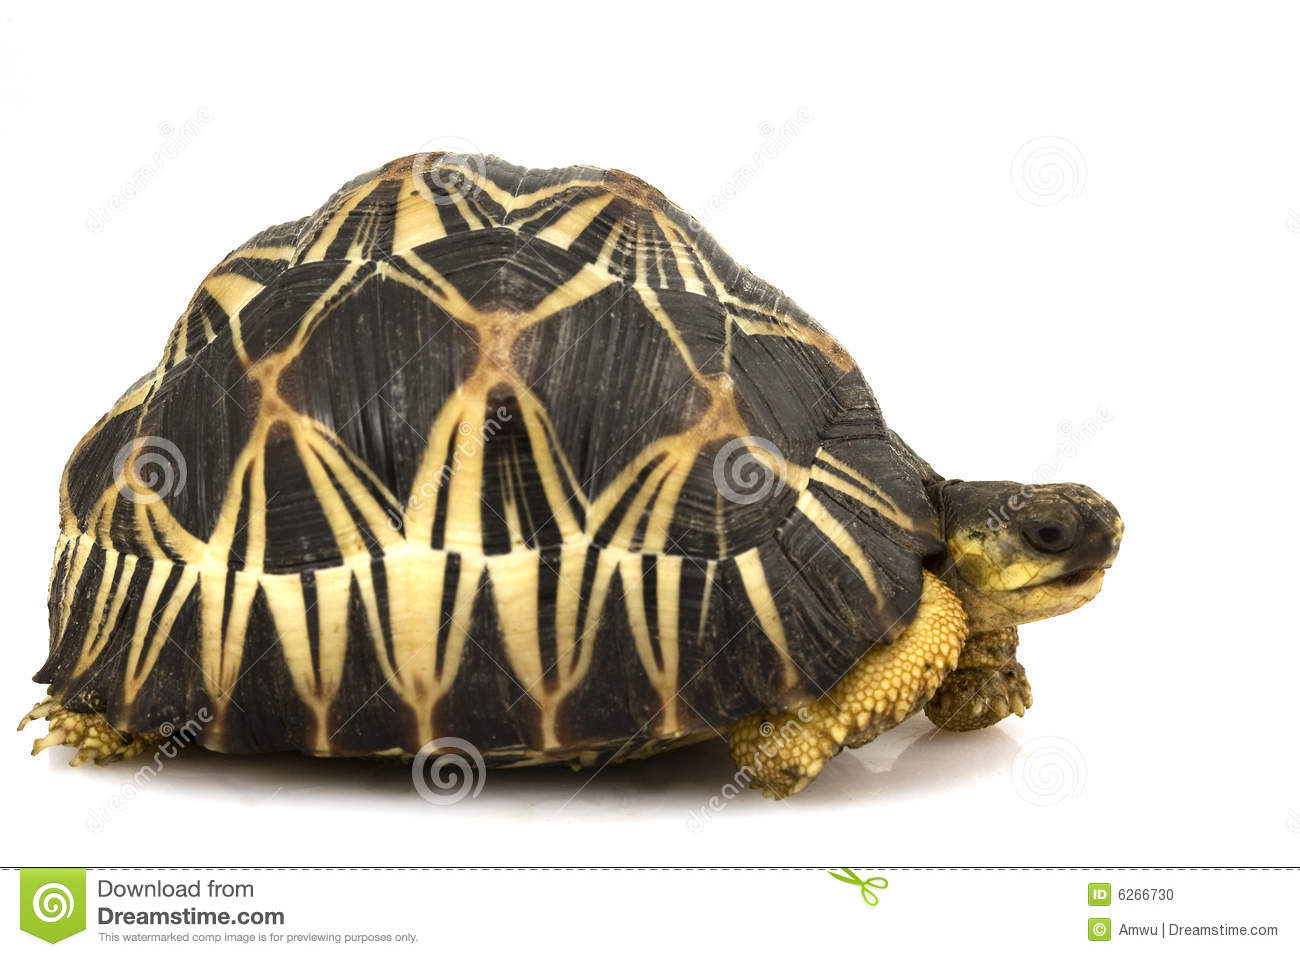 Radiated Tortoise clipart #4, Download drawings